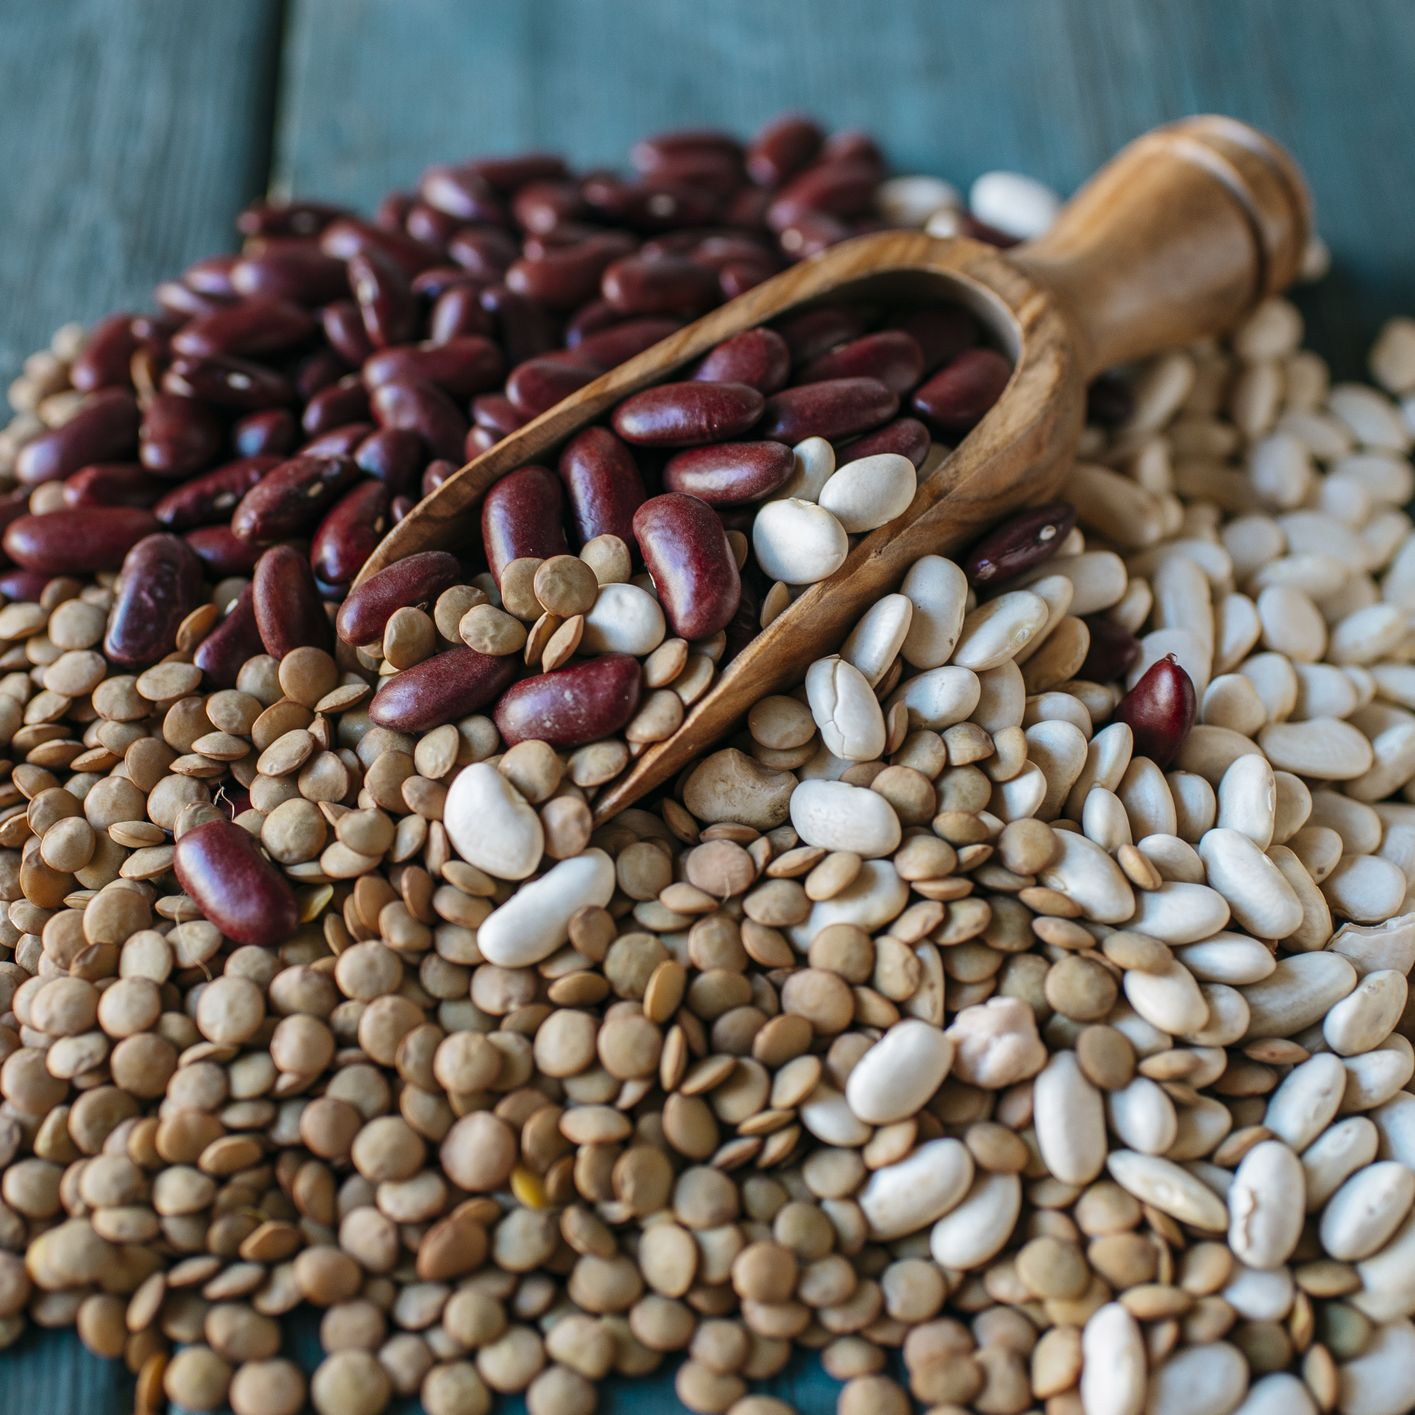 foods high in iron -Pulses